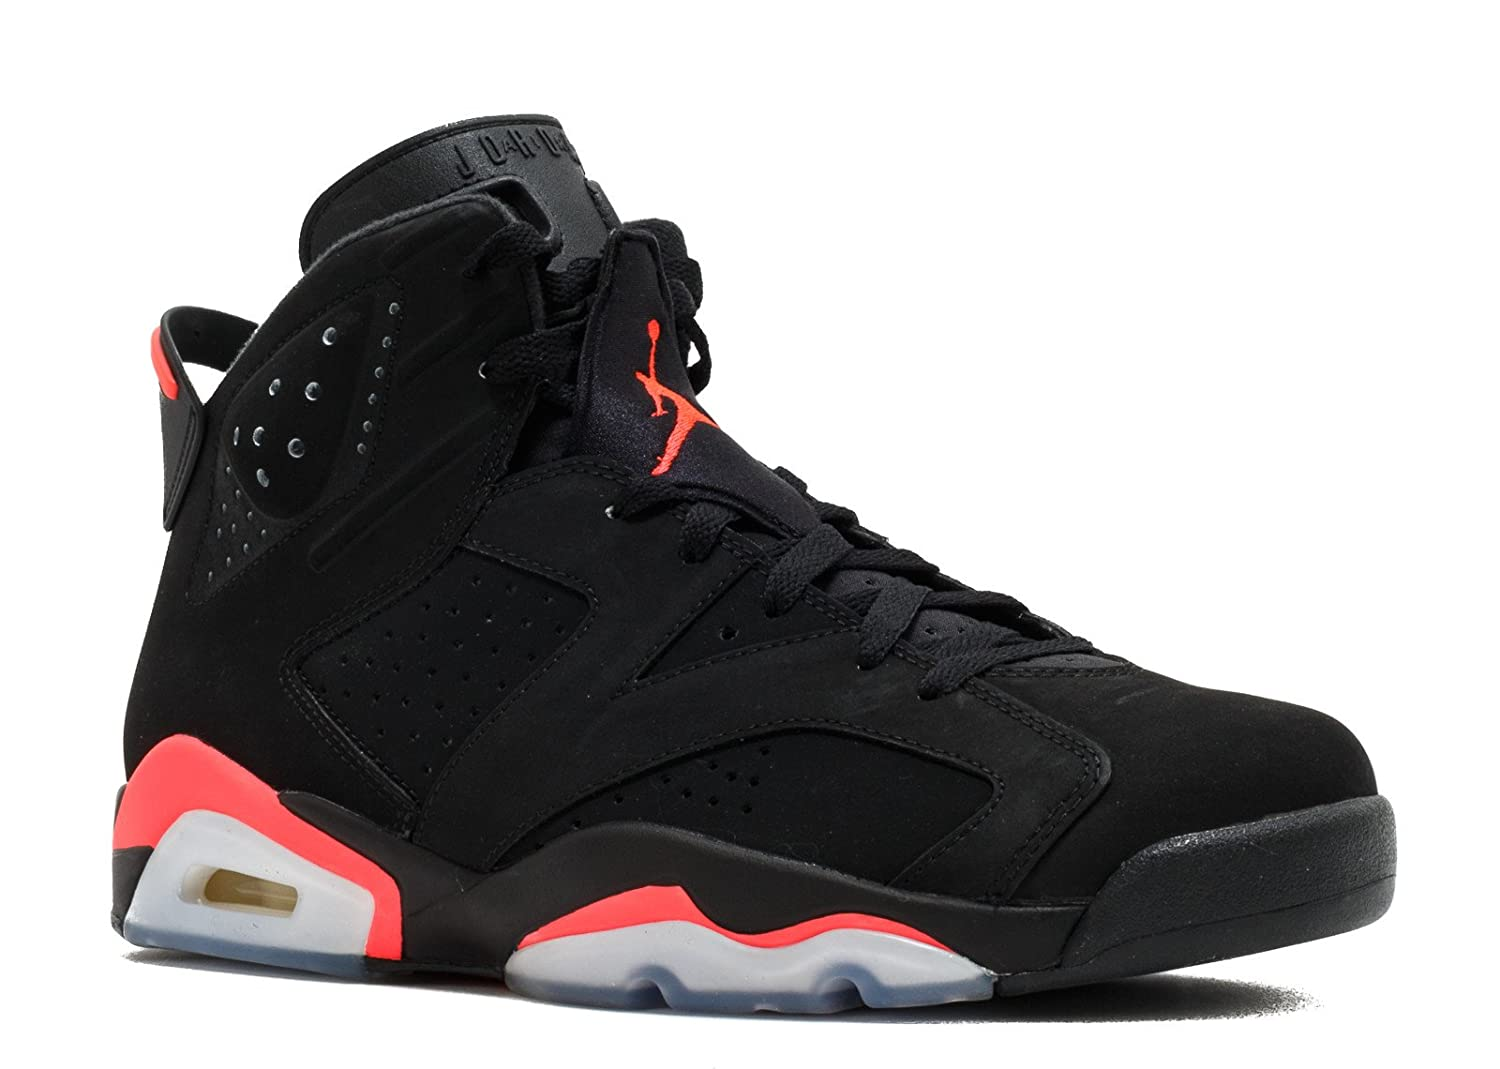 newest f816d 83693 Nike Mens Air Jordan 6 Retro Infrared Black Infrared 23 Suede Basketball  Shoes Size 10. 5  Buy Online at Low Prices in India - Amazon.in